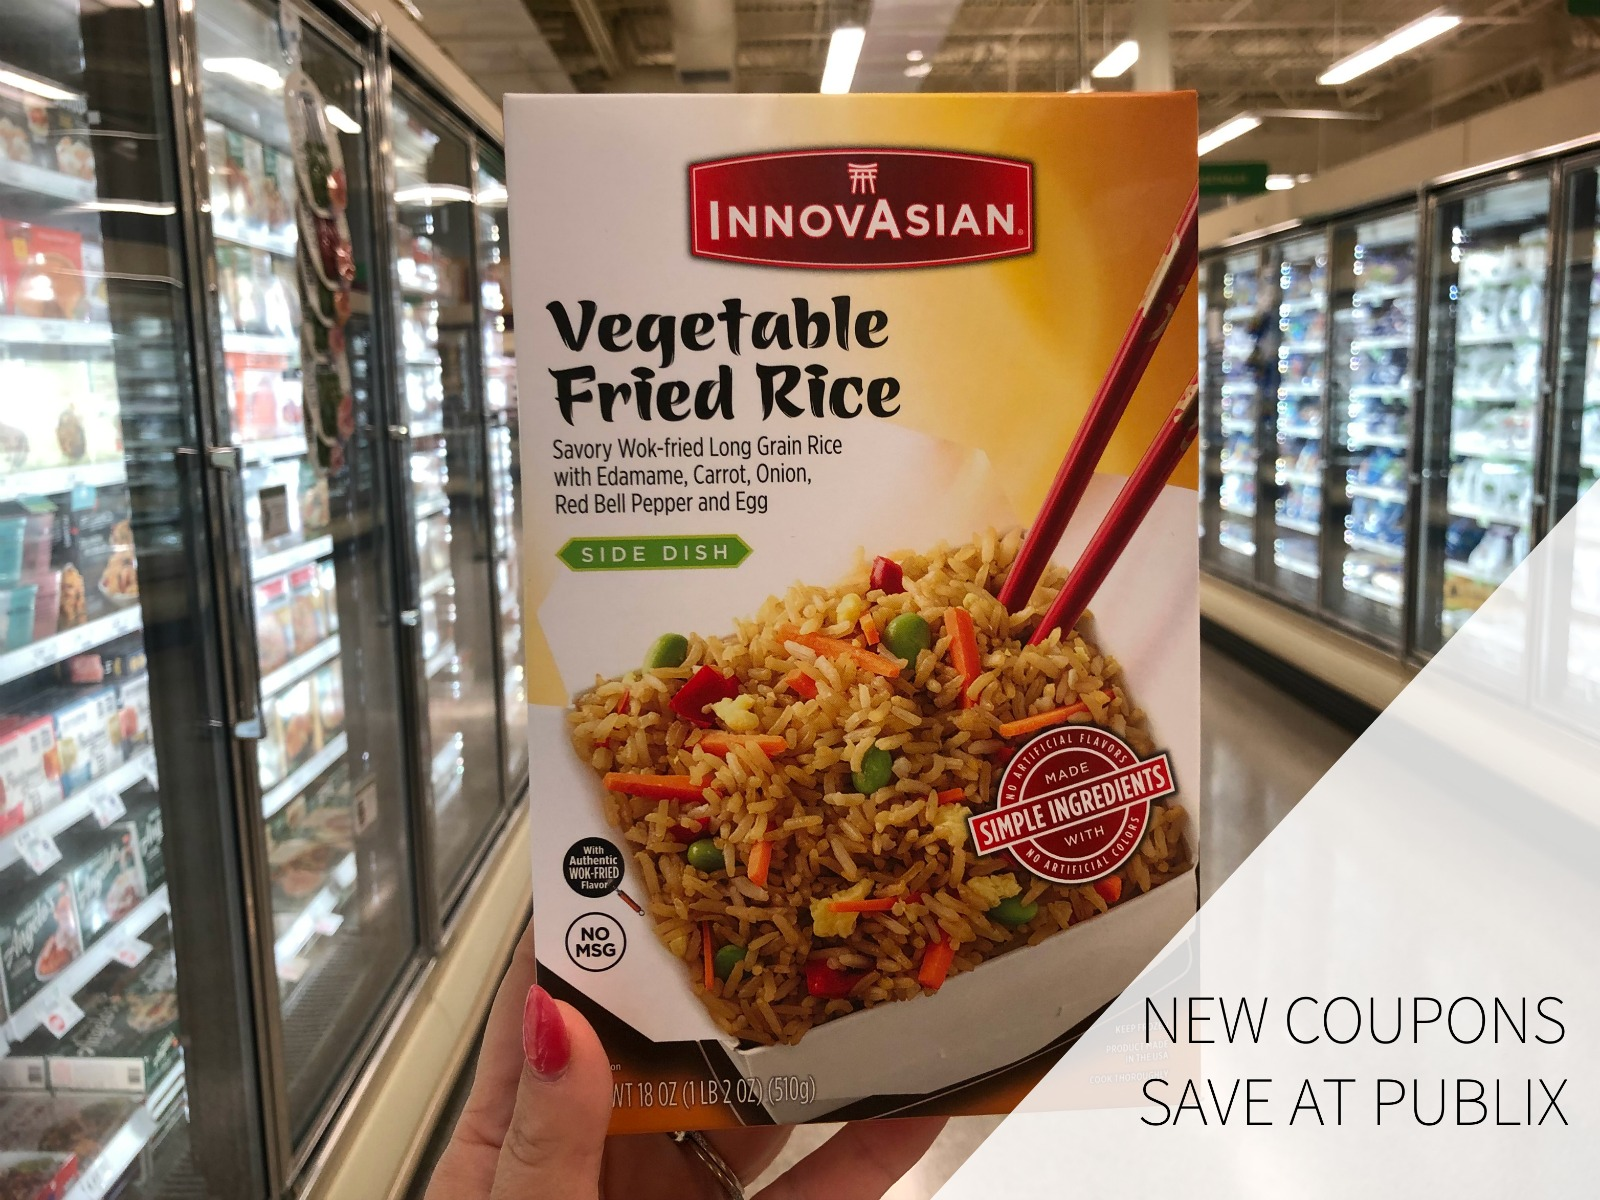 New InnovAsian Coupons - Save At Publix on I Heart Publix